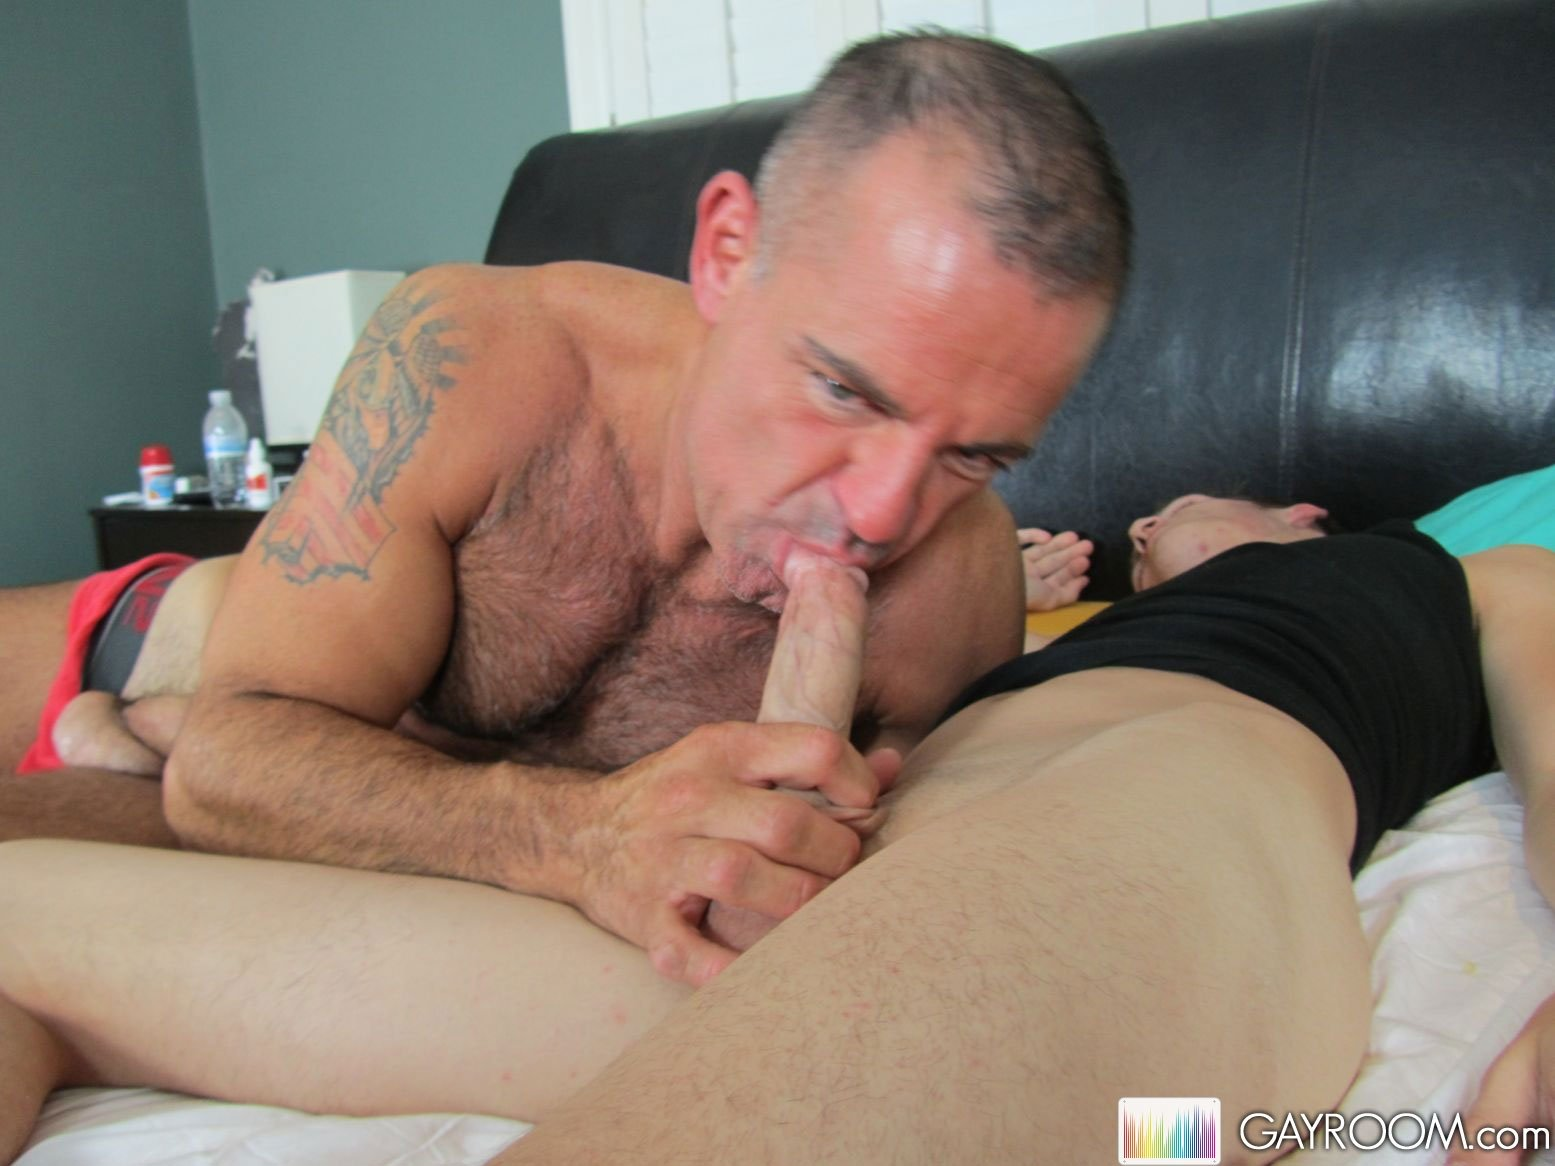 Download gay anal fuck short clips hot guy 2